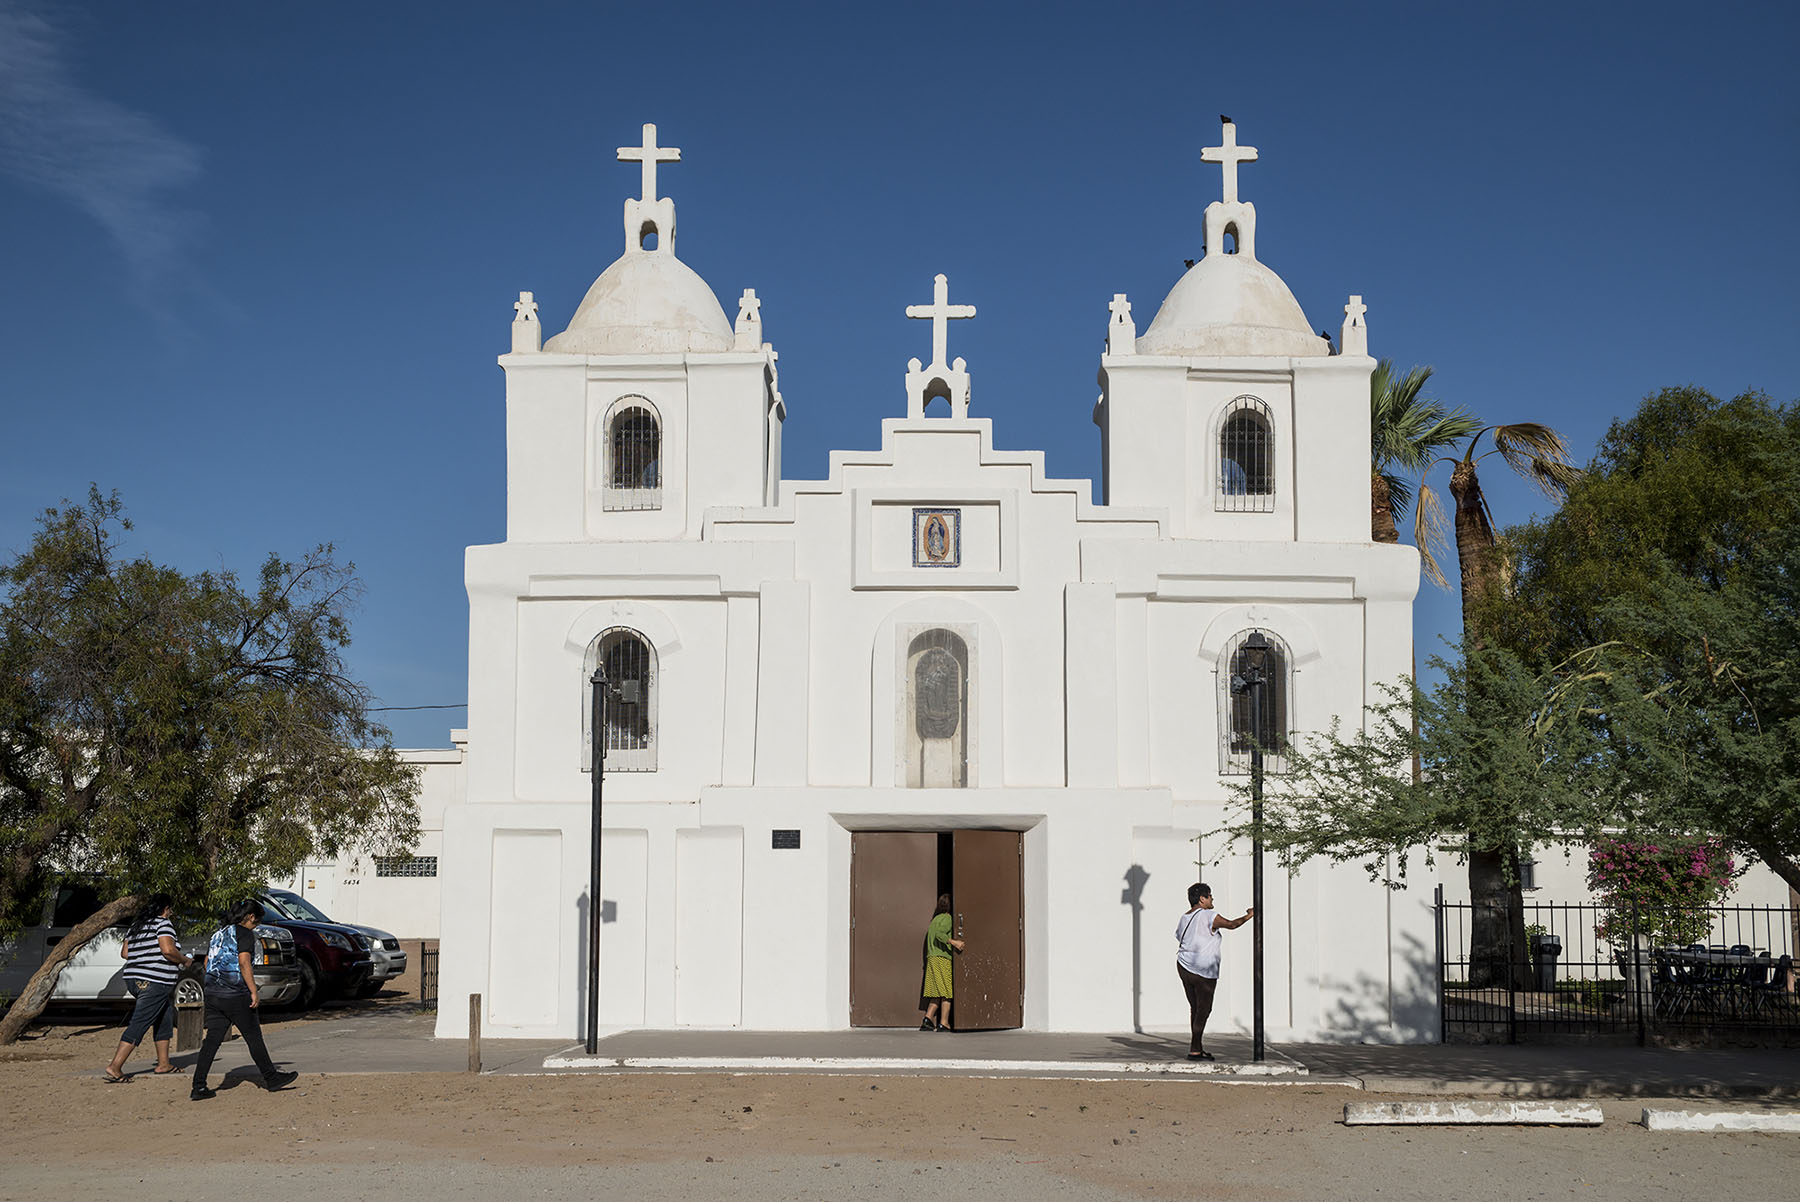 Guadalupe, Arizona, has a majority Latino population, and its Our Lady of Guadalupe Church draws Latinos from nearby towns who say it reminds them of churches in Mexico. (Roman Knertser/News21)